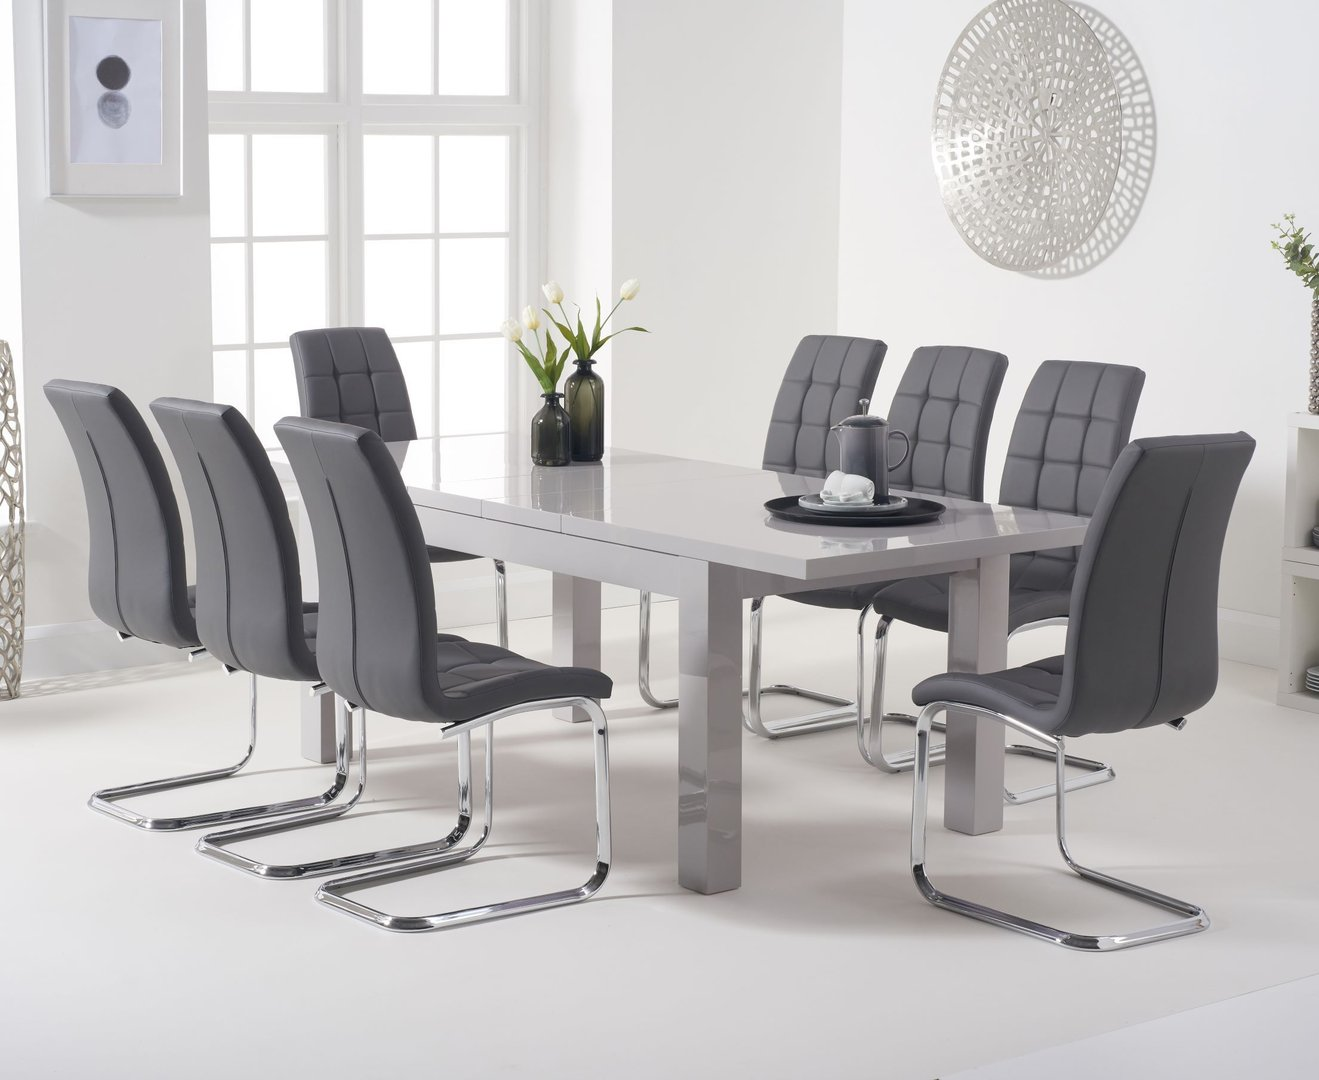 Extending light grey dining table and 9 grey chairs   Homegenies